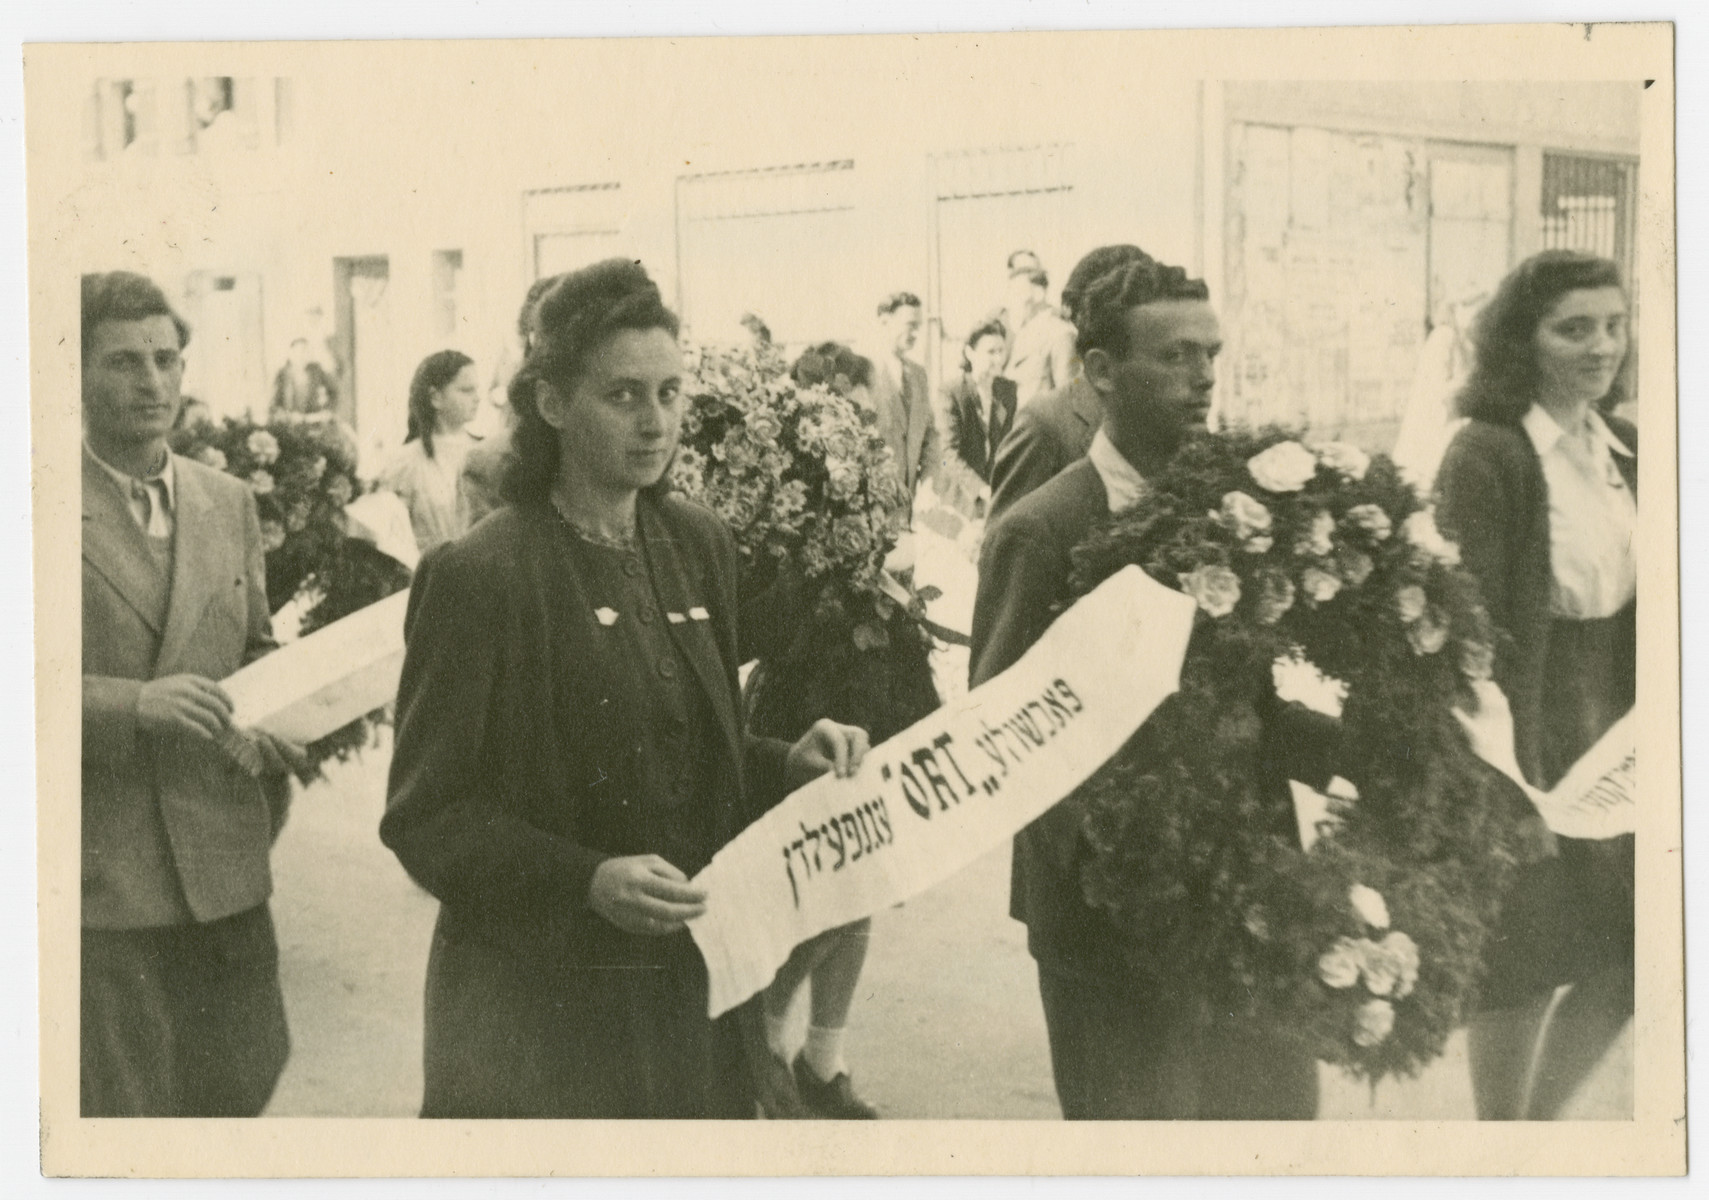 Jews from the Eggenfelden displaced persons camp participate in a commemorative march for the victims of a Nazi death march.  Vera Spitz is pictured on the far right.